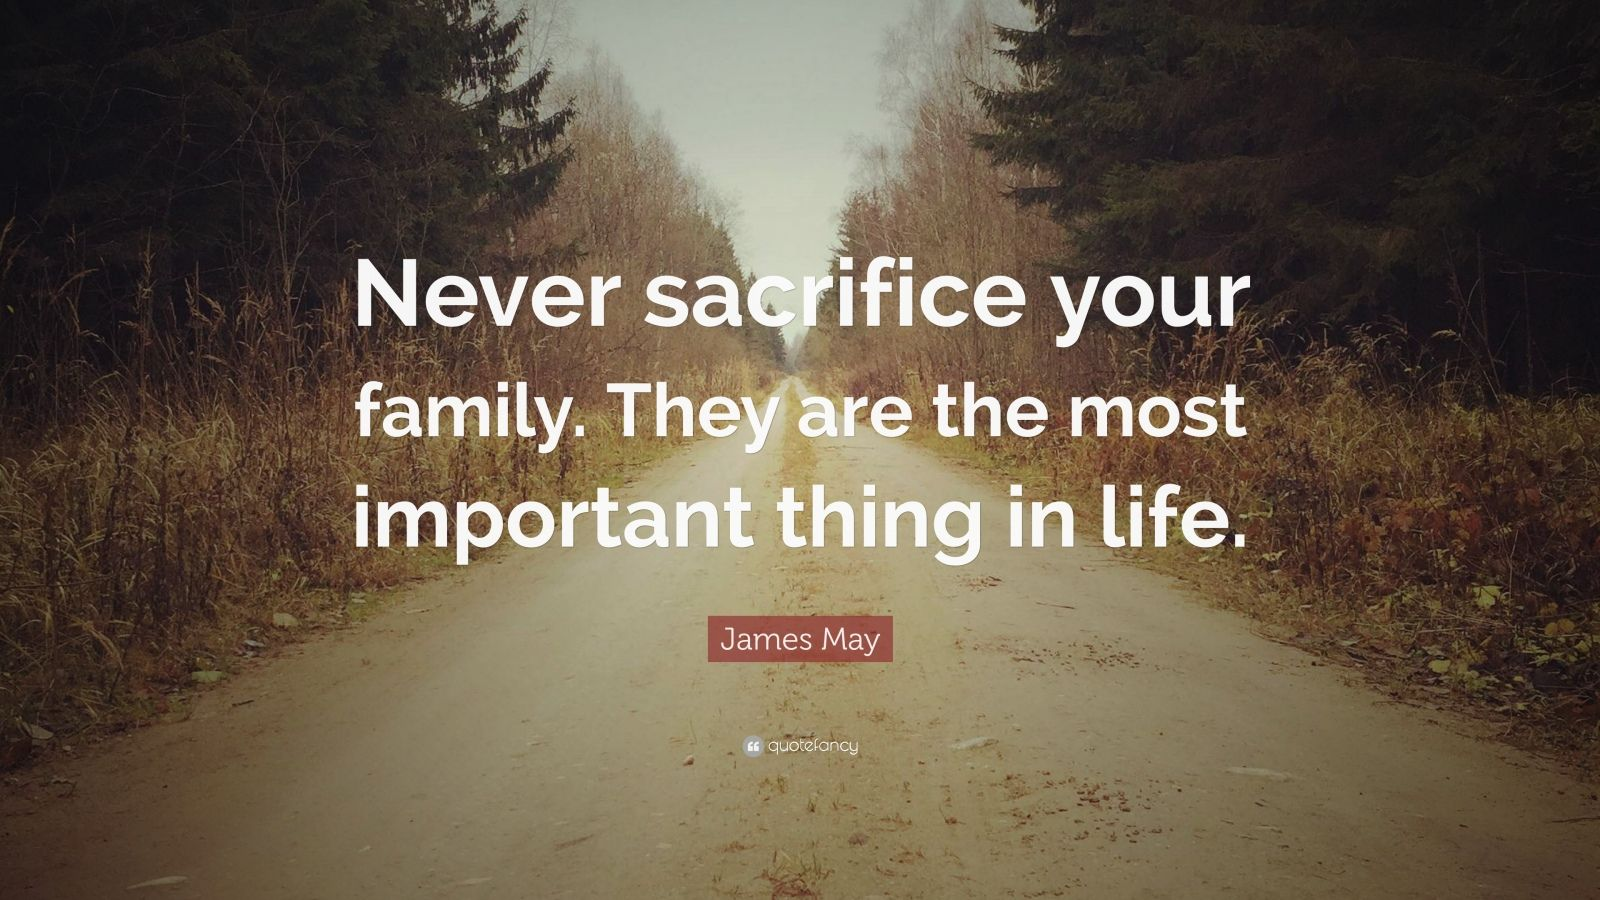 family is the most important thing in life essay The most important thing i learned about family is that sometimes they will take more than they are willing to give some family will totally take advantage of you they are usually the people who mistreat you and will be quick to backstab you.